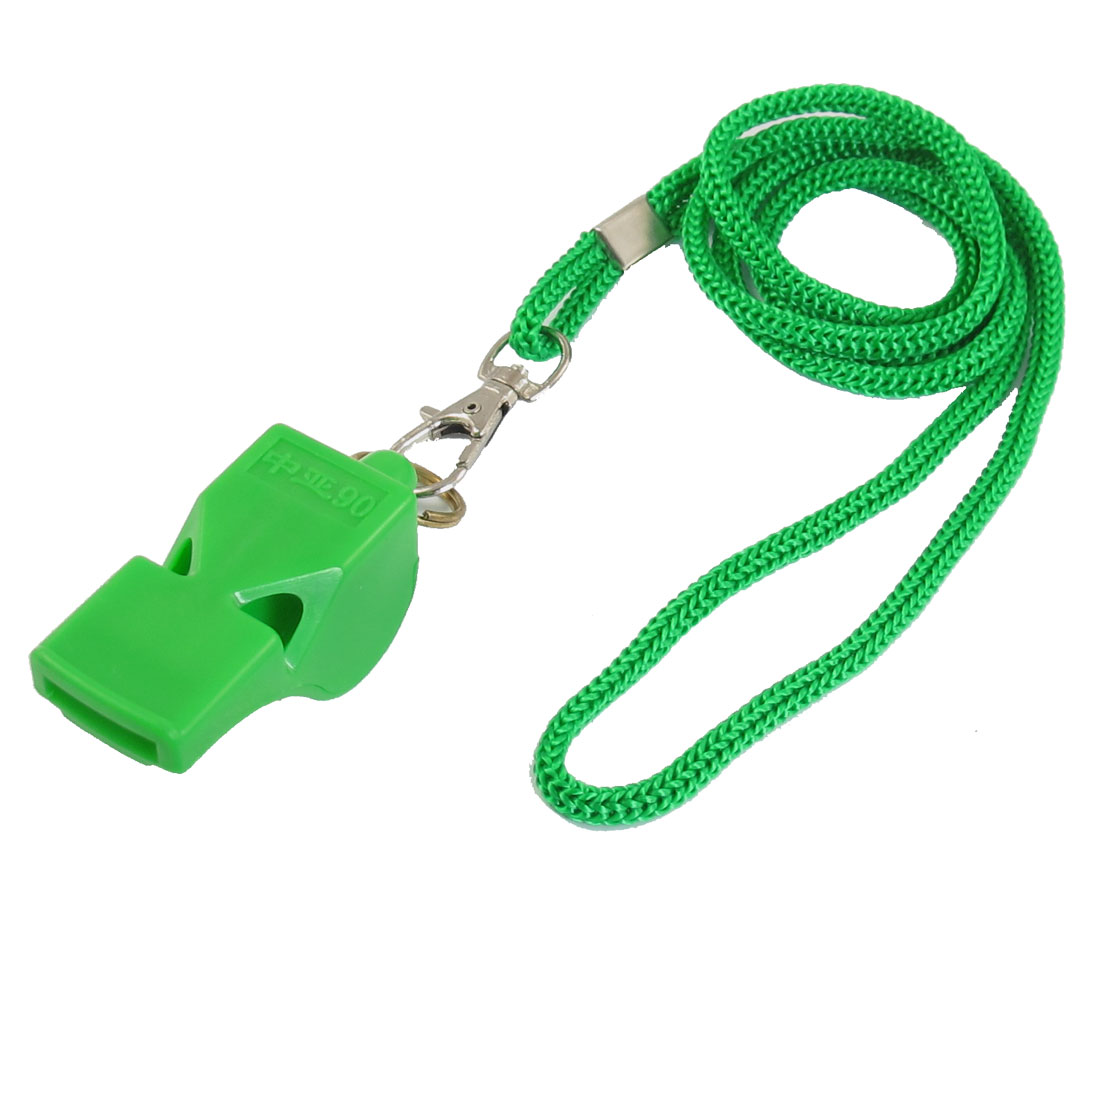 Sports Match Green Plastic Whistle Toy w Neck Strap